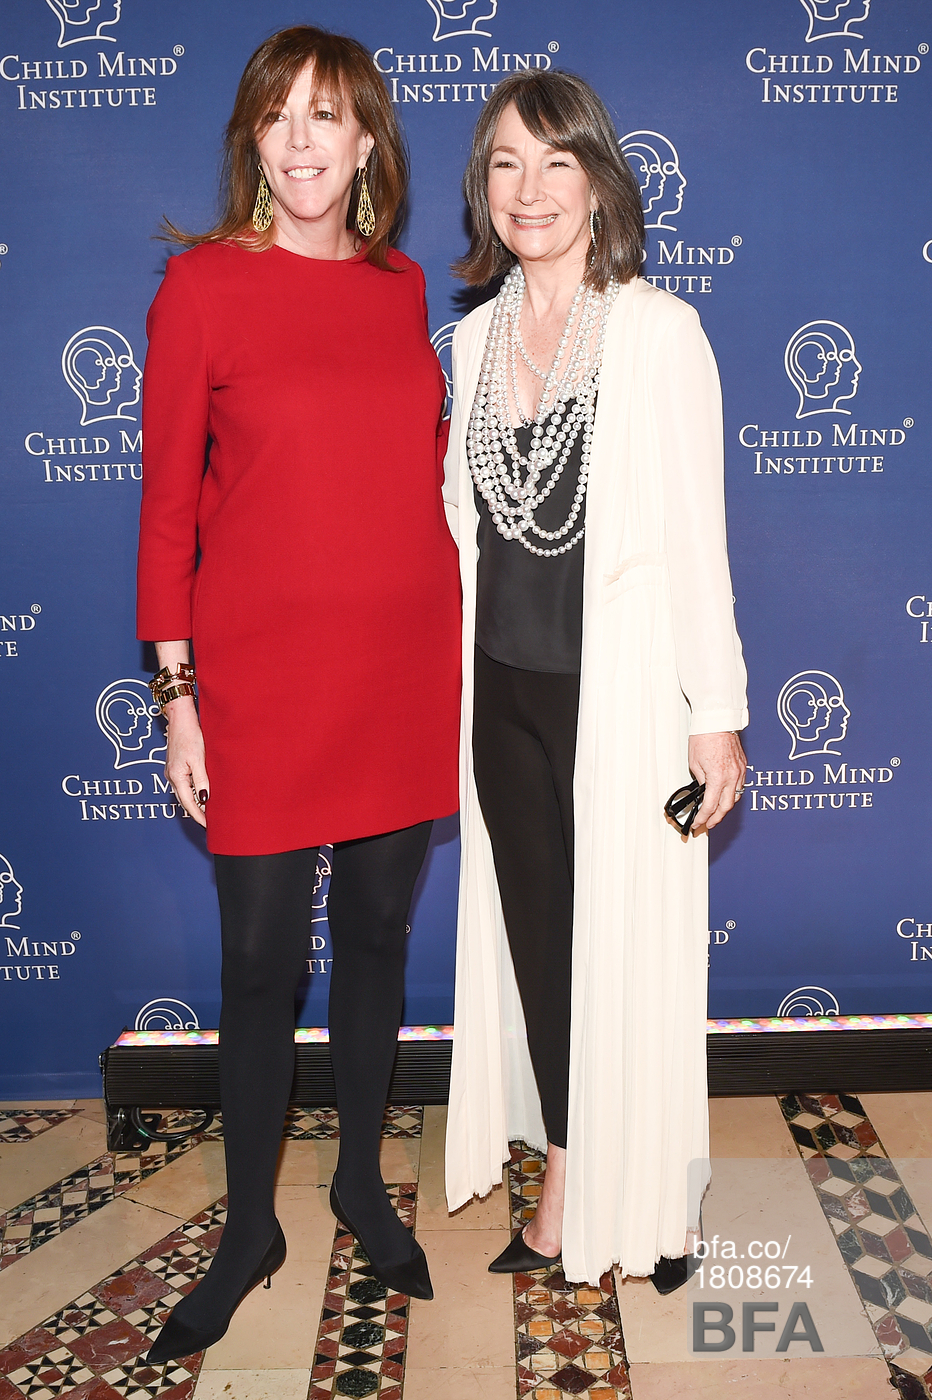 Jane Rosenthal & Brooke Garber Neidich - December 2015 - Christy Rilling Studio shift dress & camisole